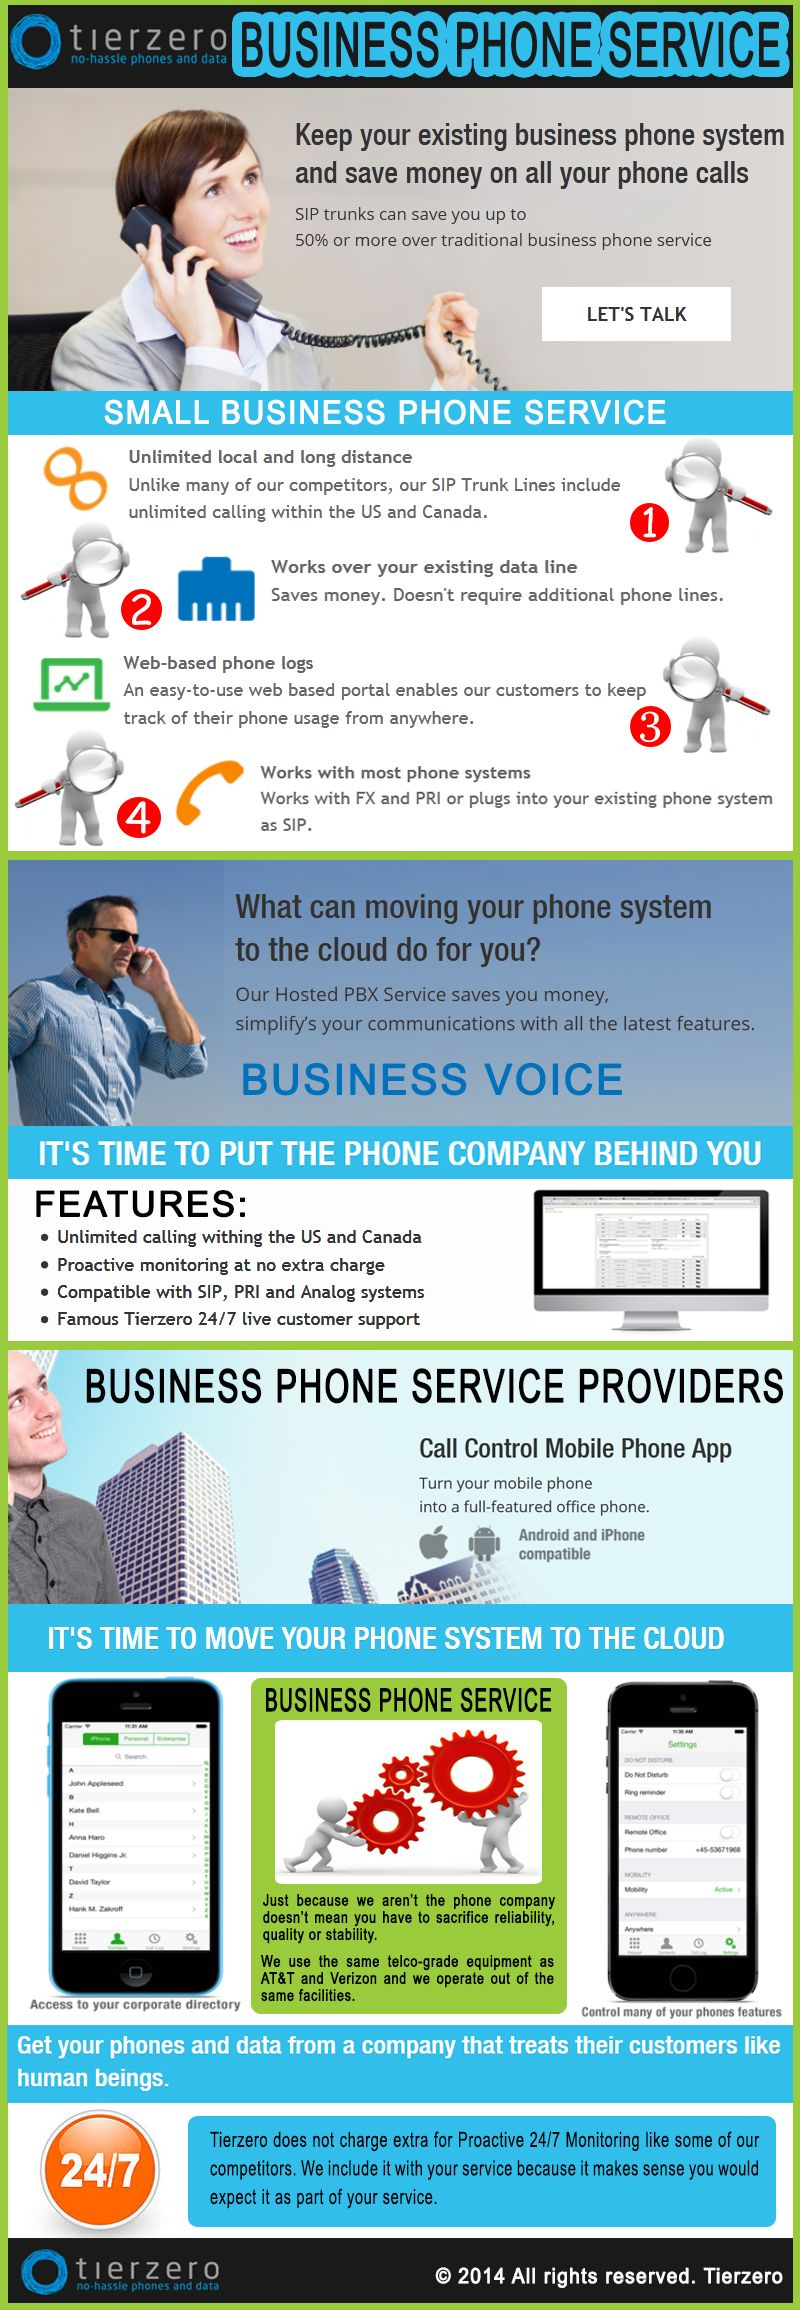 Visit our site http://tierzero.com/what-we-do/business-voice/ for more information on Business Phone Service. Business Phone Service, telecom audio conferencing is the perfect solution for today's business environment. Through telecom audio conferencing you can organize a worldwide meeting in minutes and respond to business issues on the spot. This enhances productivity and saves on hidden meeting costs involved in travel and accommodations.